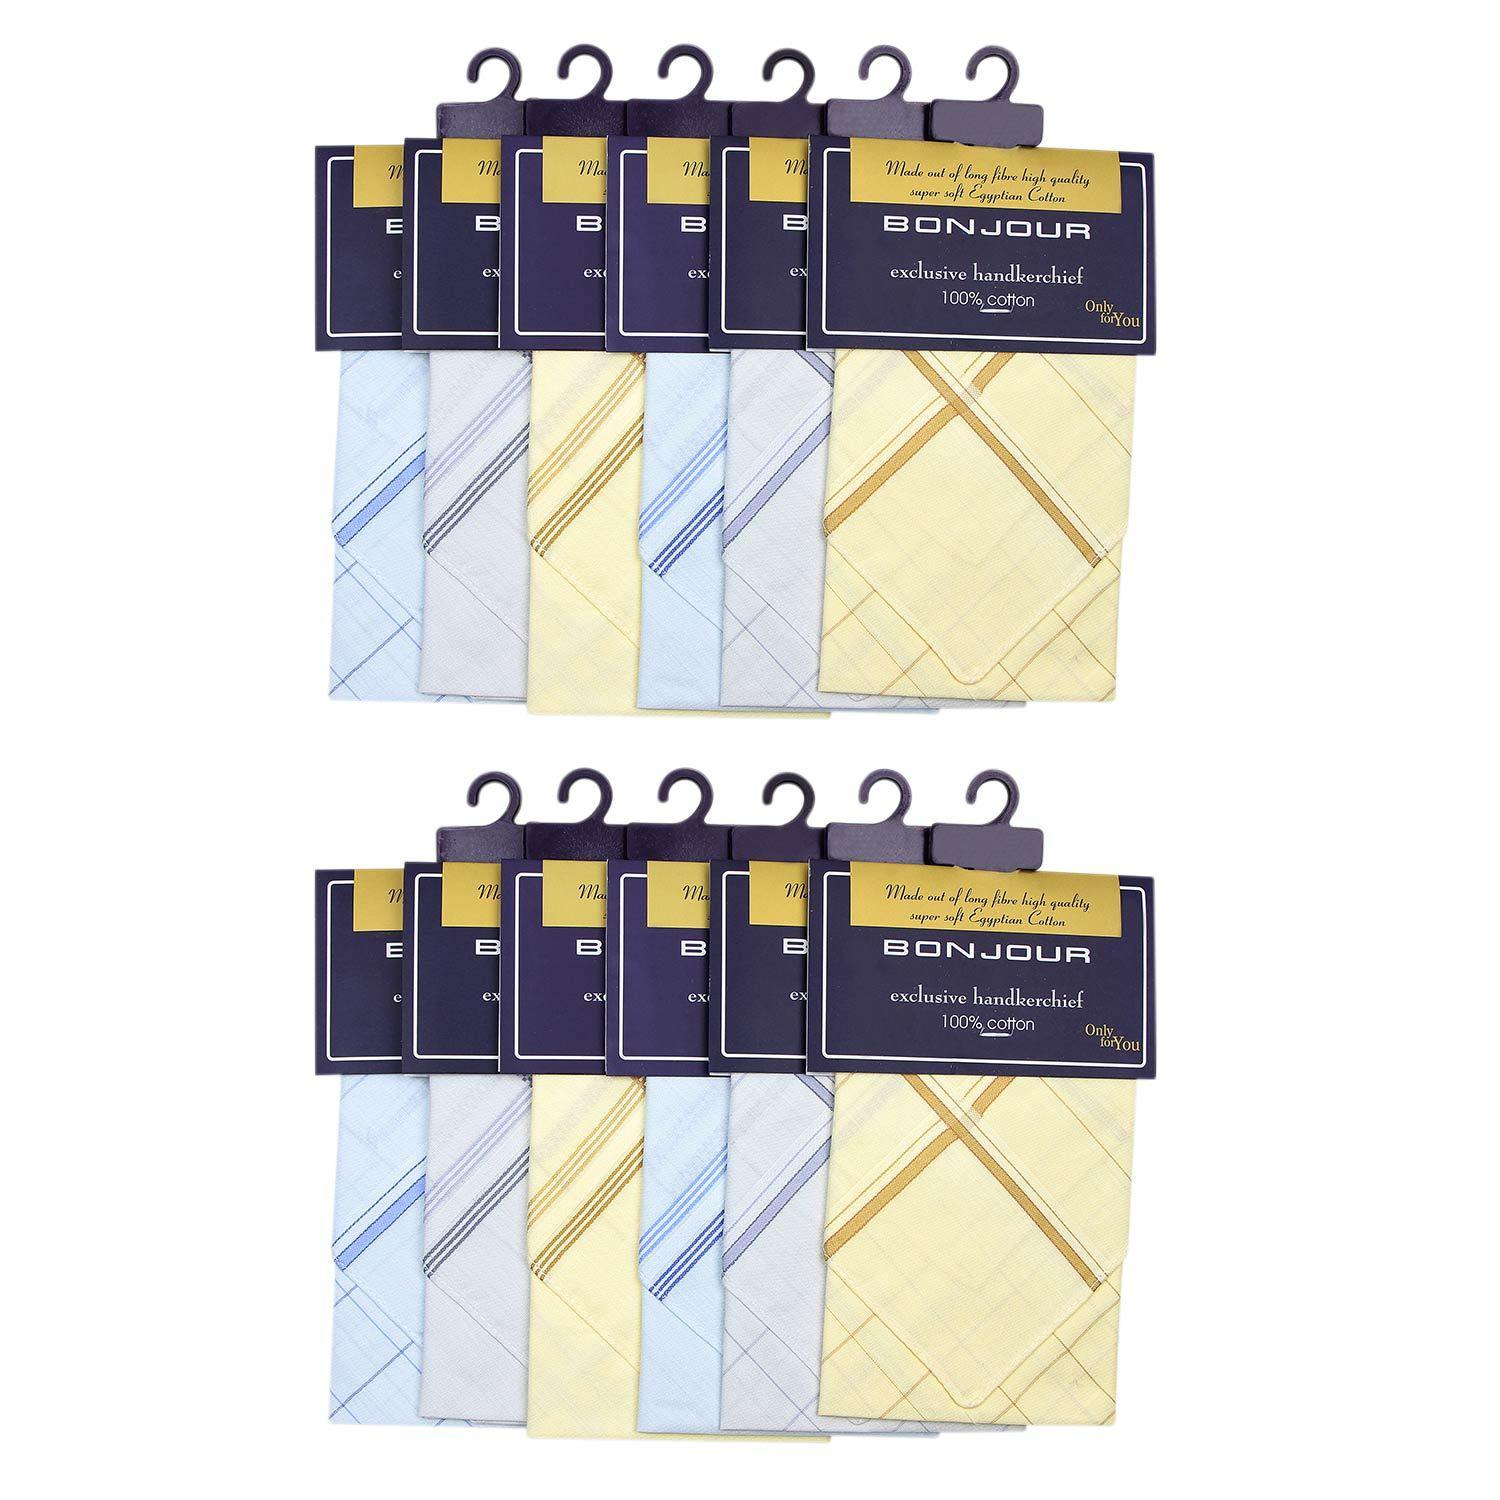 Men's Cotton Handkerchief in Pastel Colours-Pack of 12